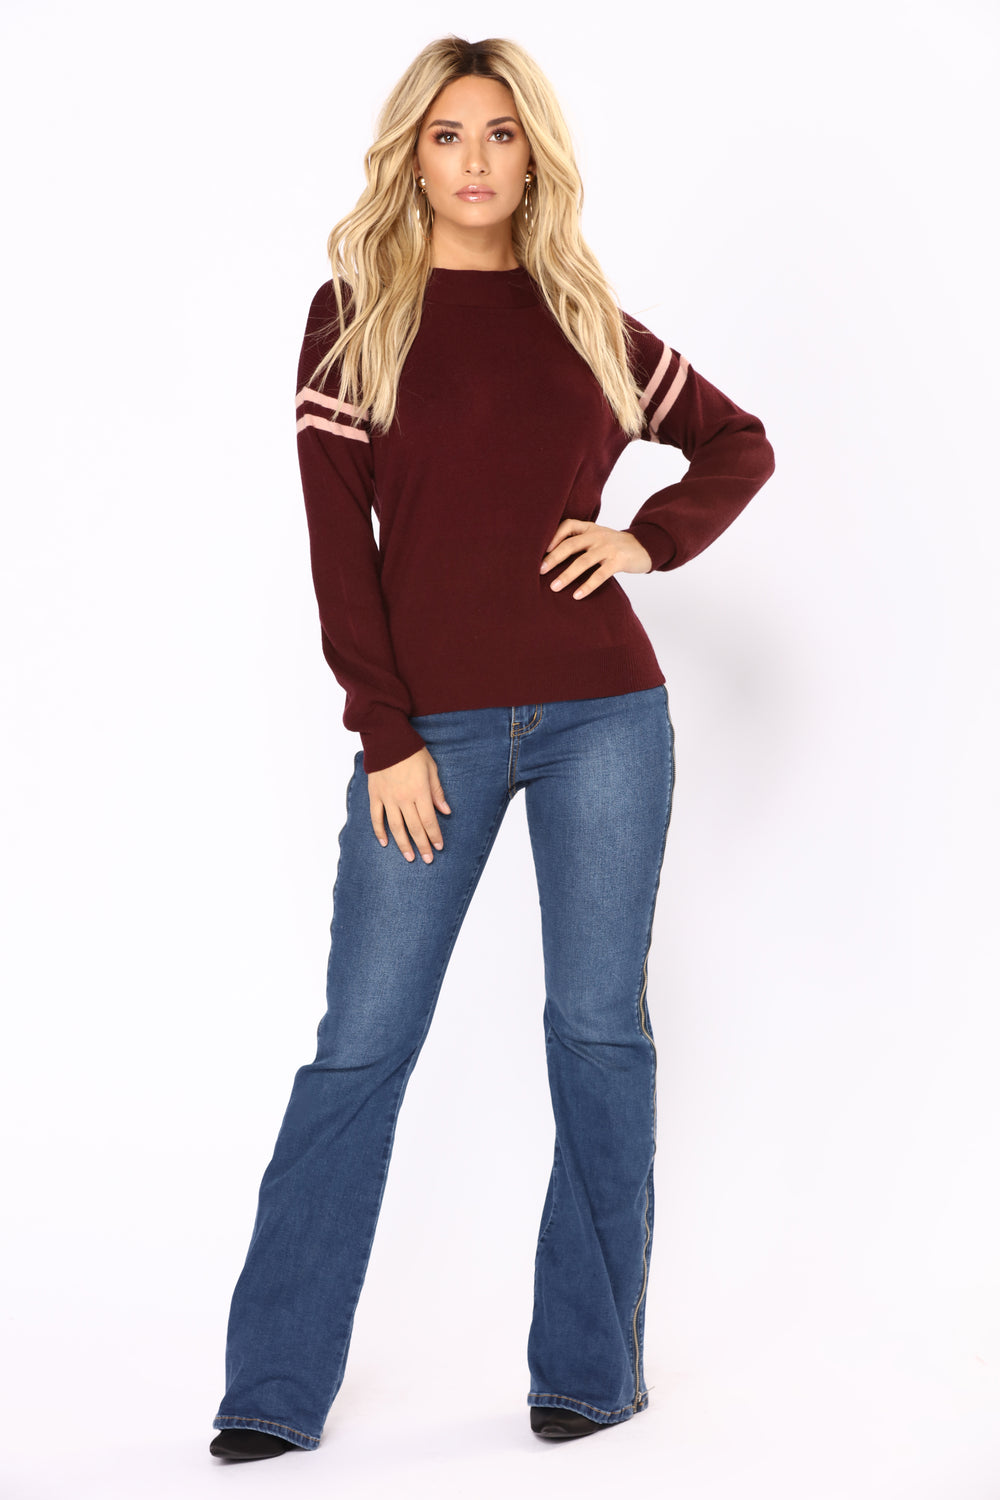 Lost In Nostalgia Sweater - Plum